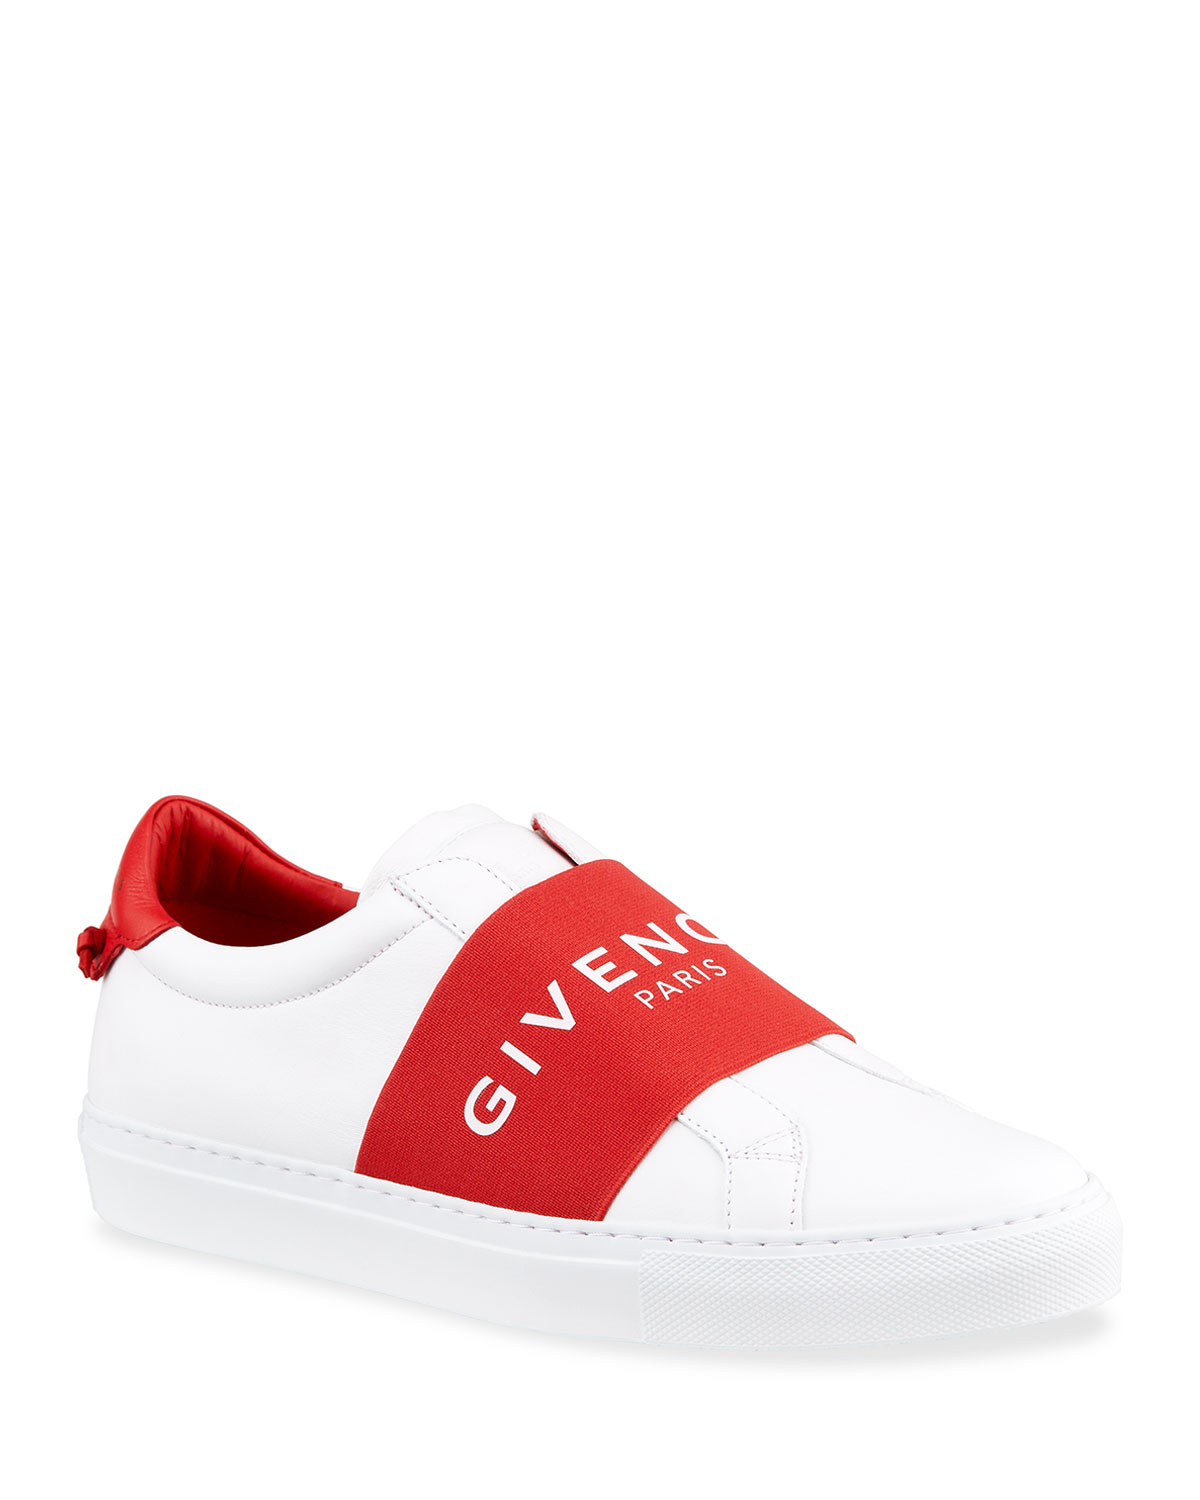 Read more White & Navy Urban Street Sneakers wide range of sale online n3wThj5p2P